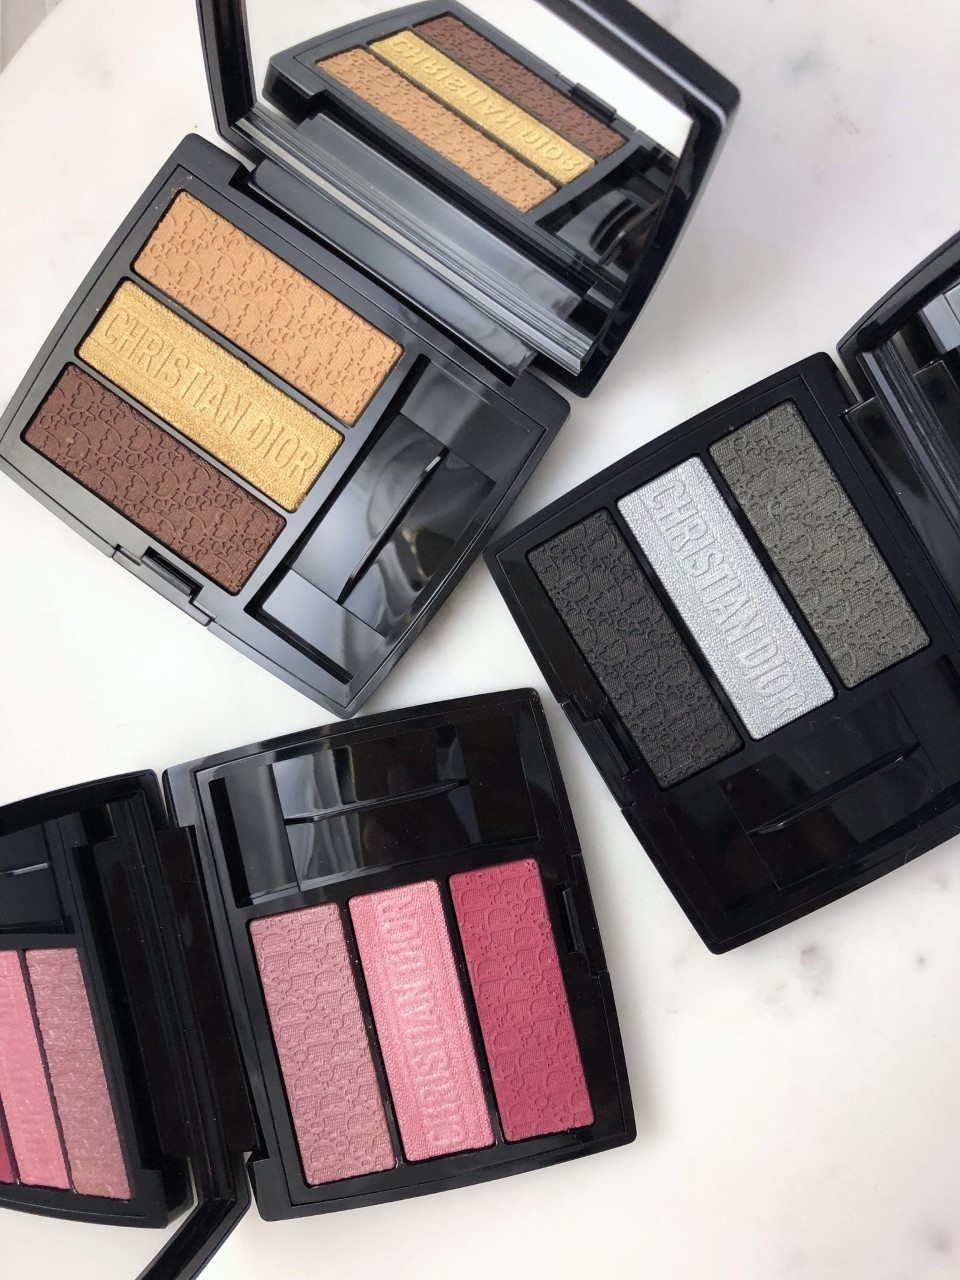 Dior 3 Couleurs Tri(O)blique Eyeshadow Palette: A quick review